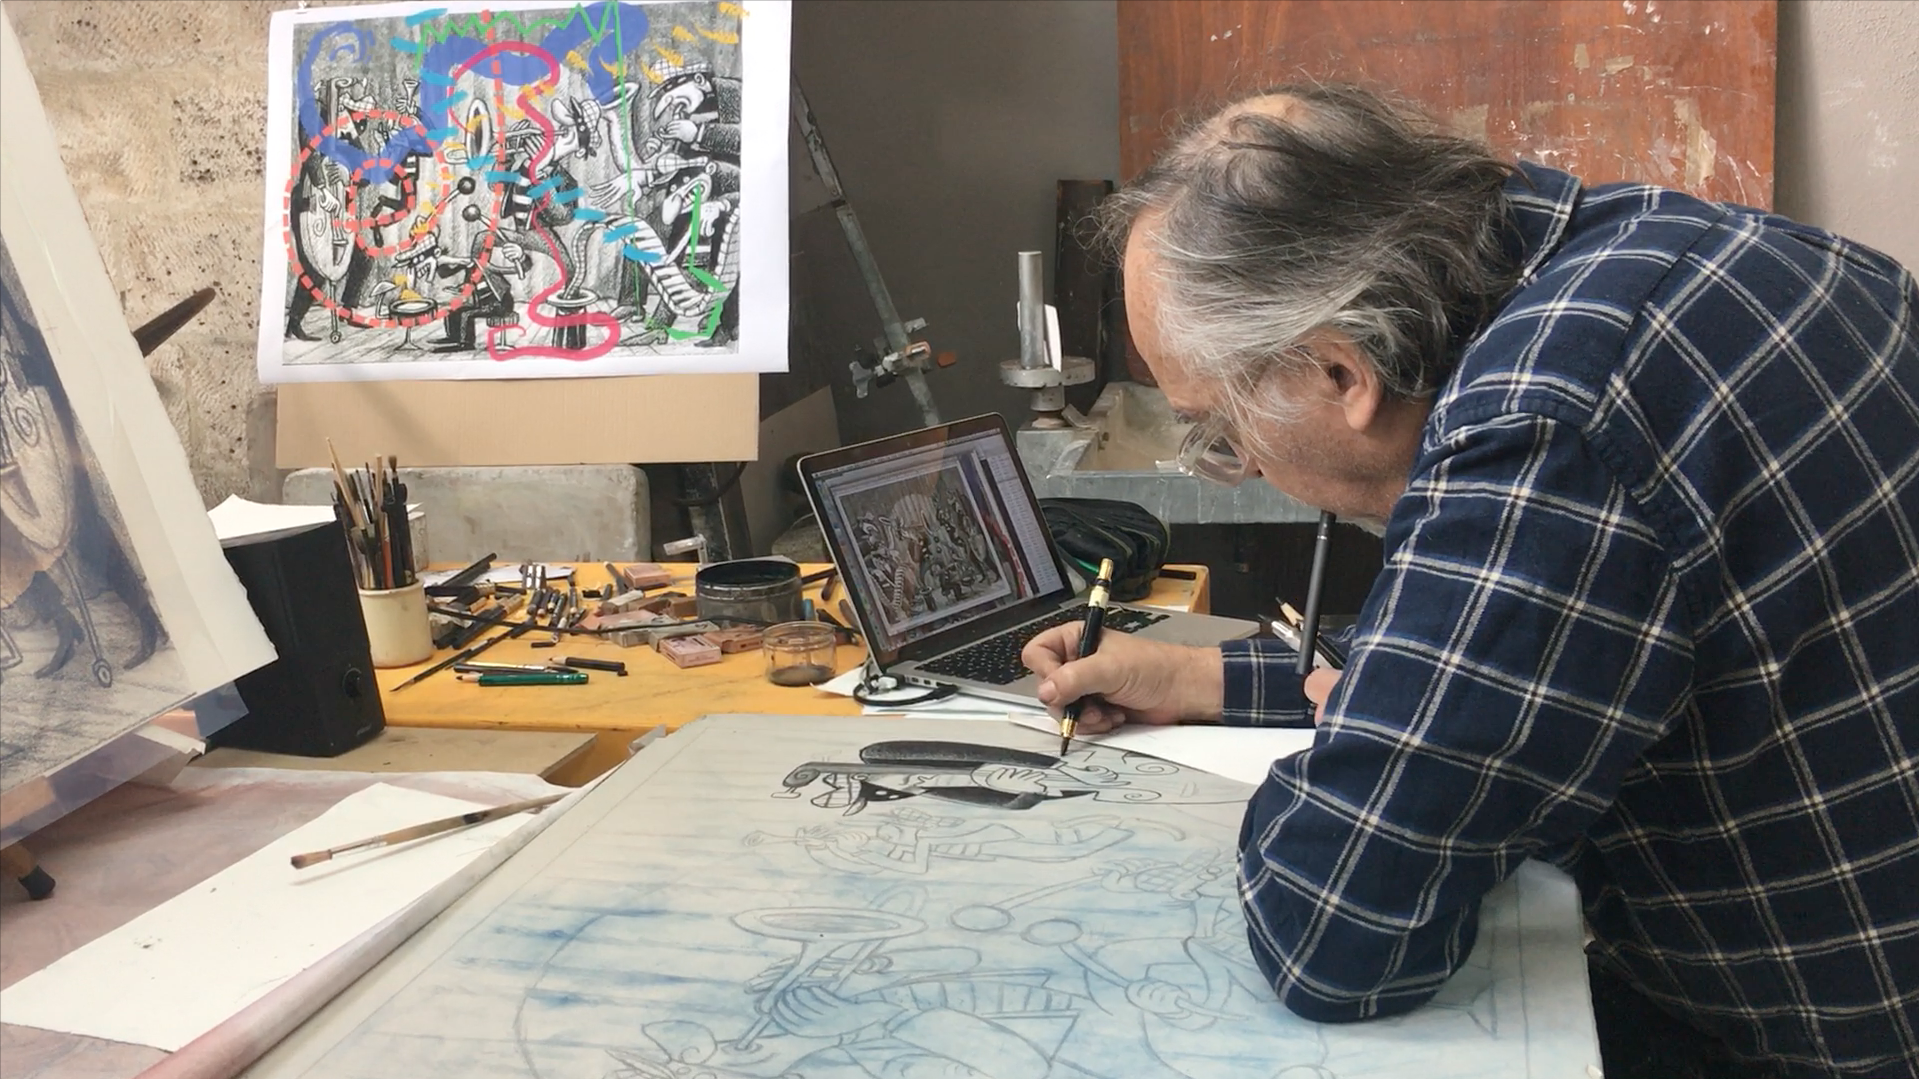 Video - Art Spiegelman dessinant sur la pierre pour la lithographie Silent Six